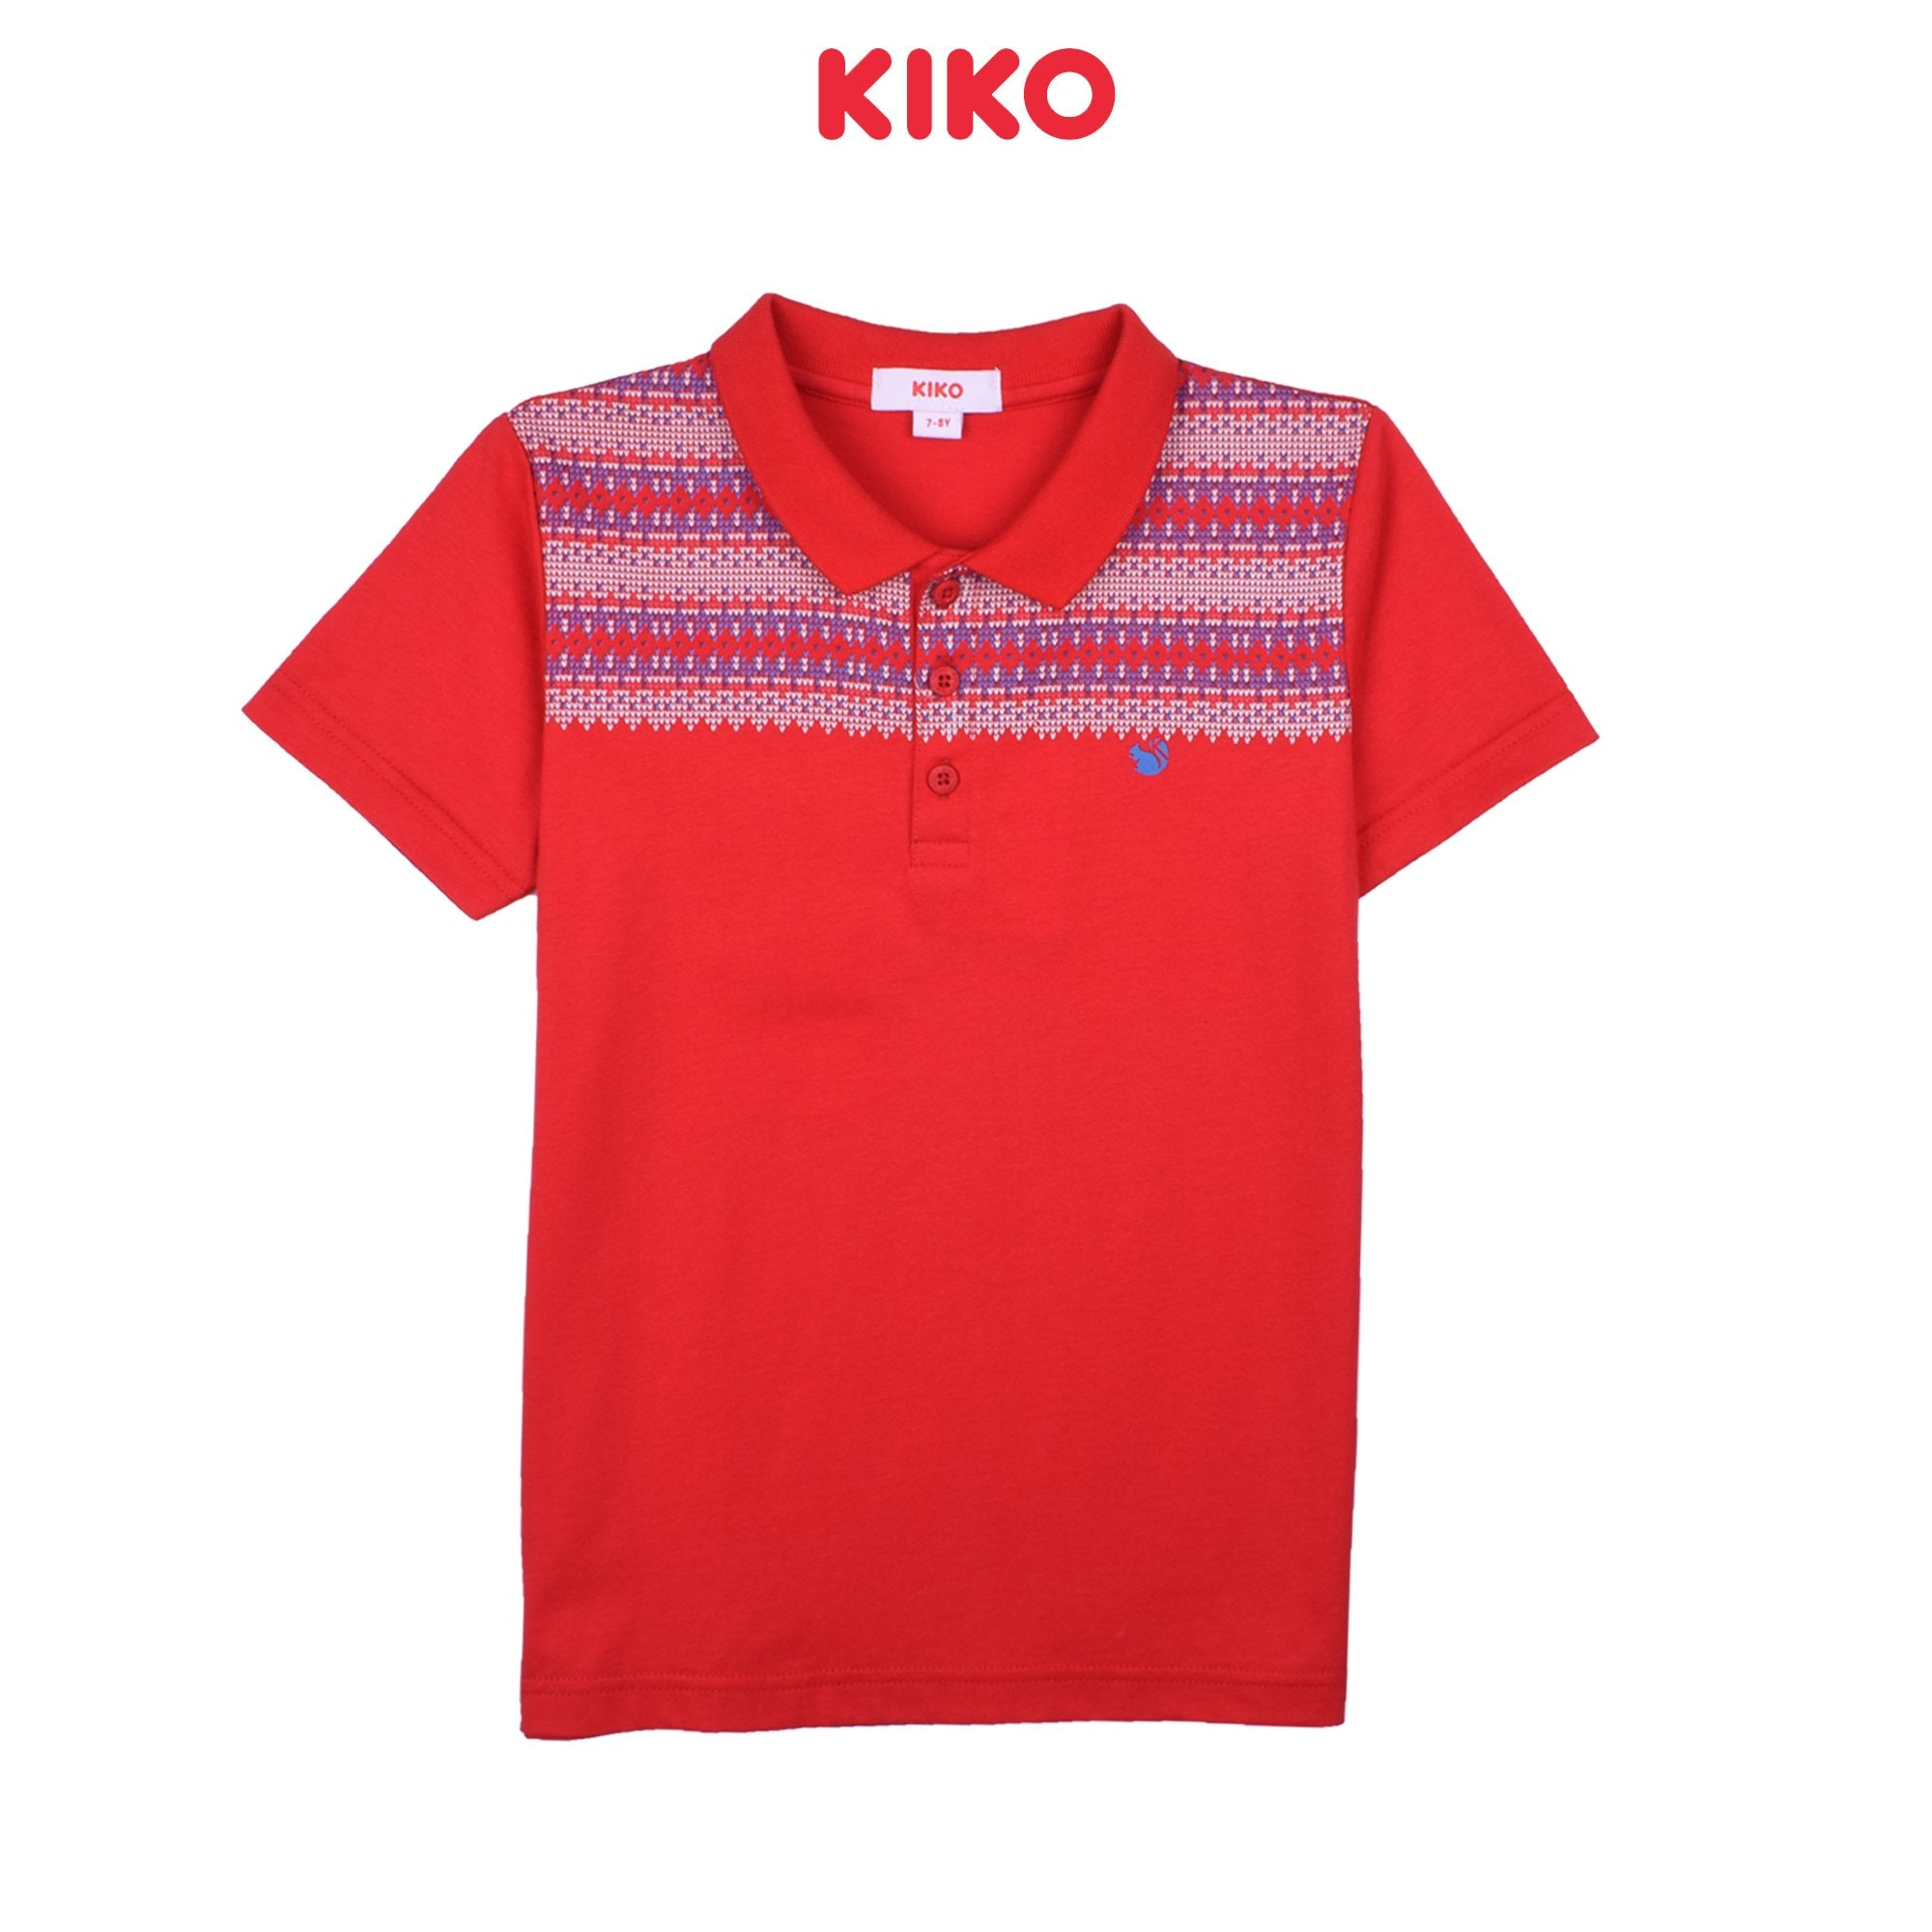 KIKO BOY BASIC SHORT SLEEVE COLLAR TEE - RED K922103-1294-R5 : Buy KIKO online at CMG.MY